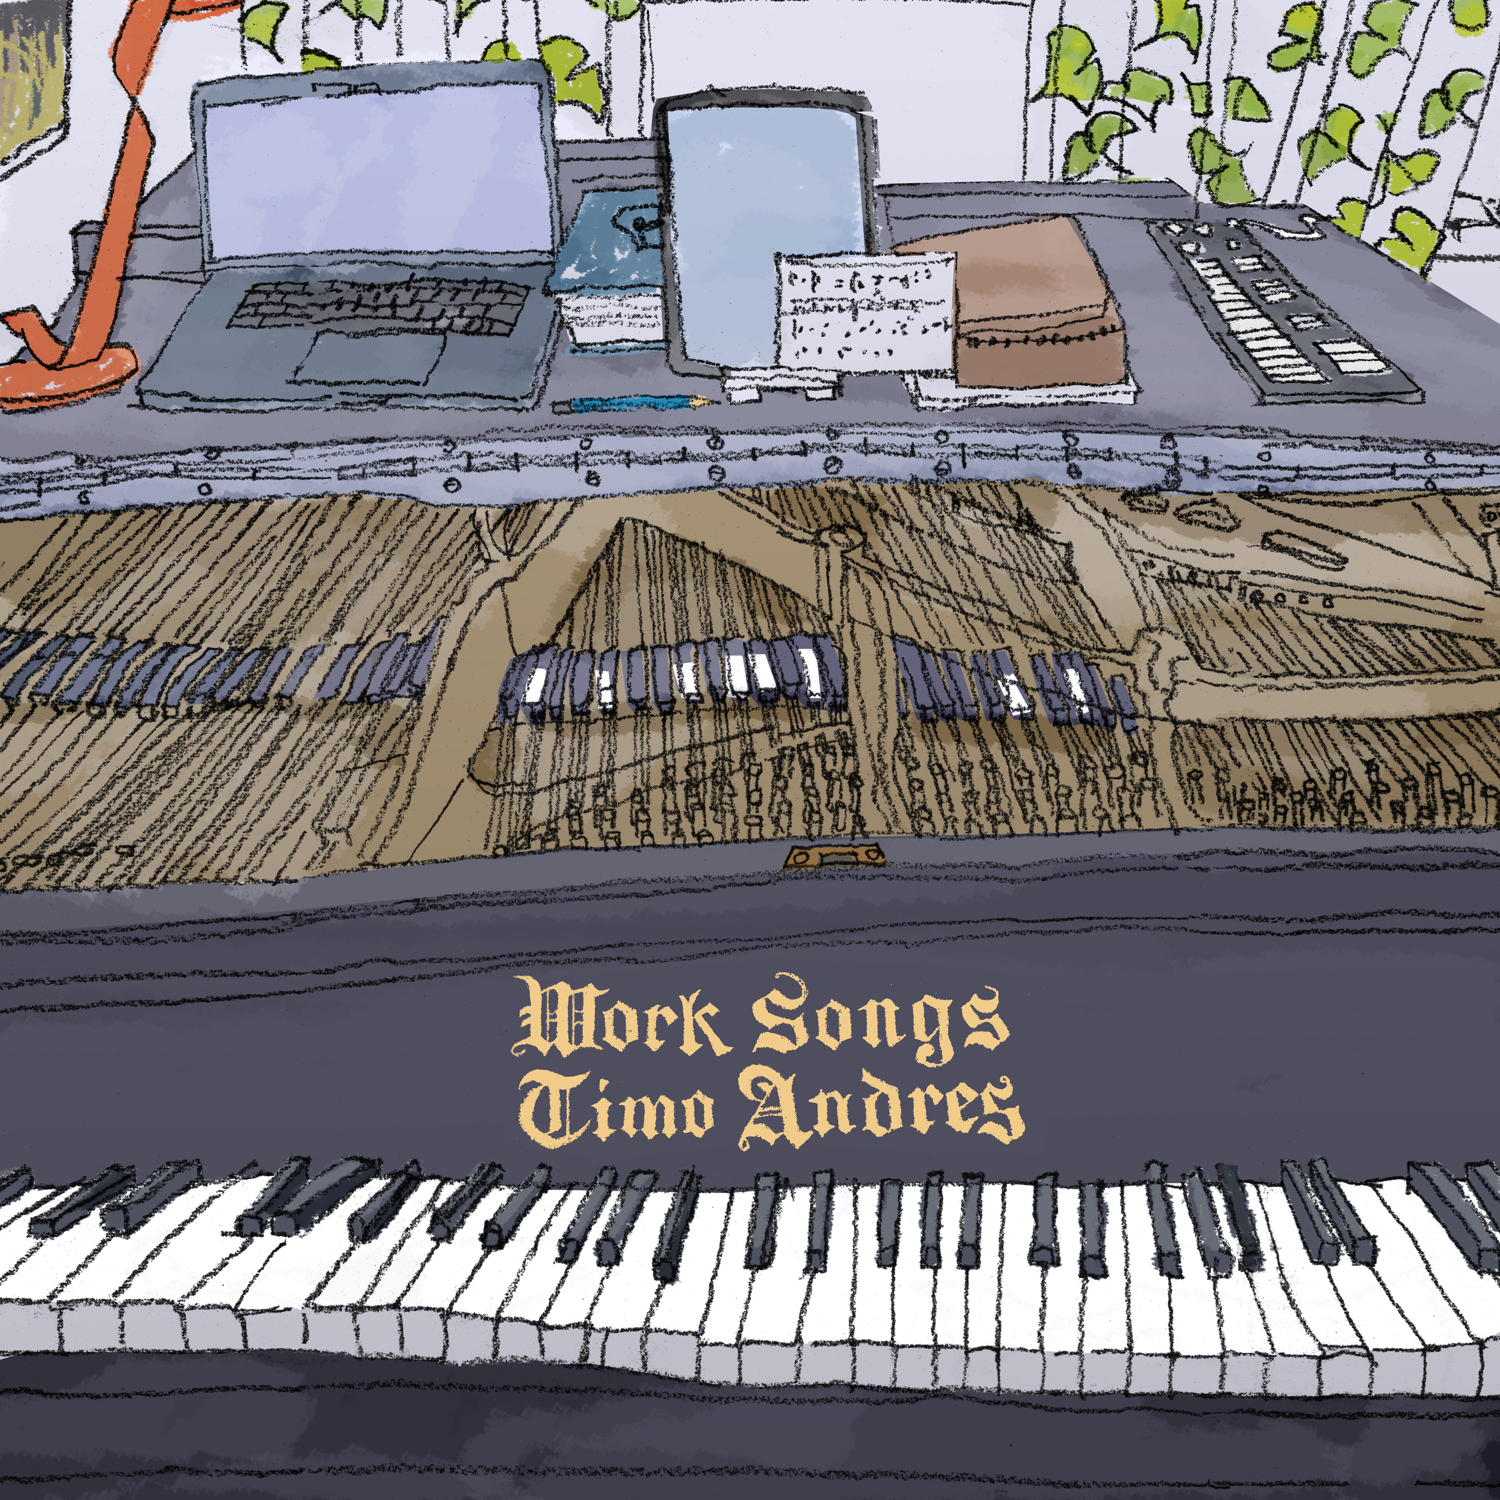 Work Songs album cover. Artwork by Harley Jessup